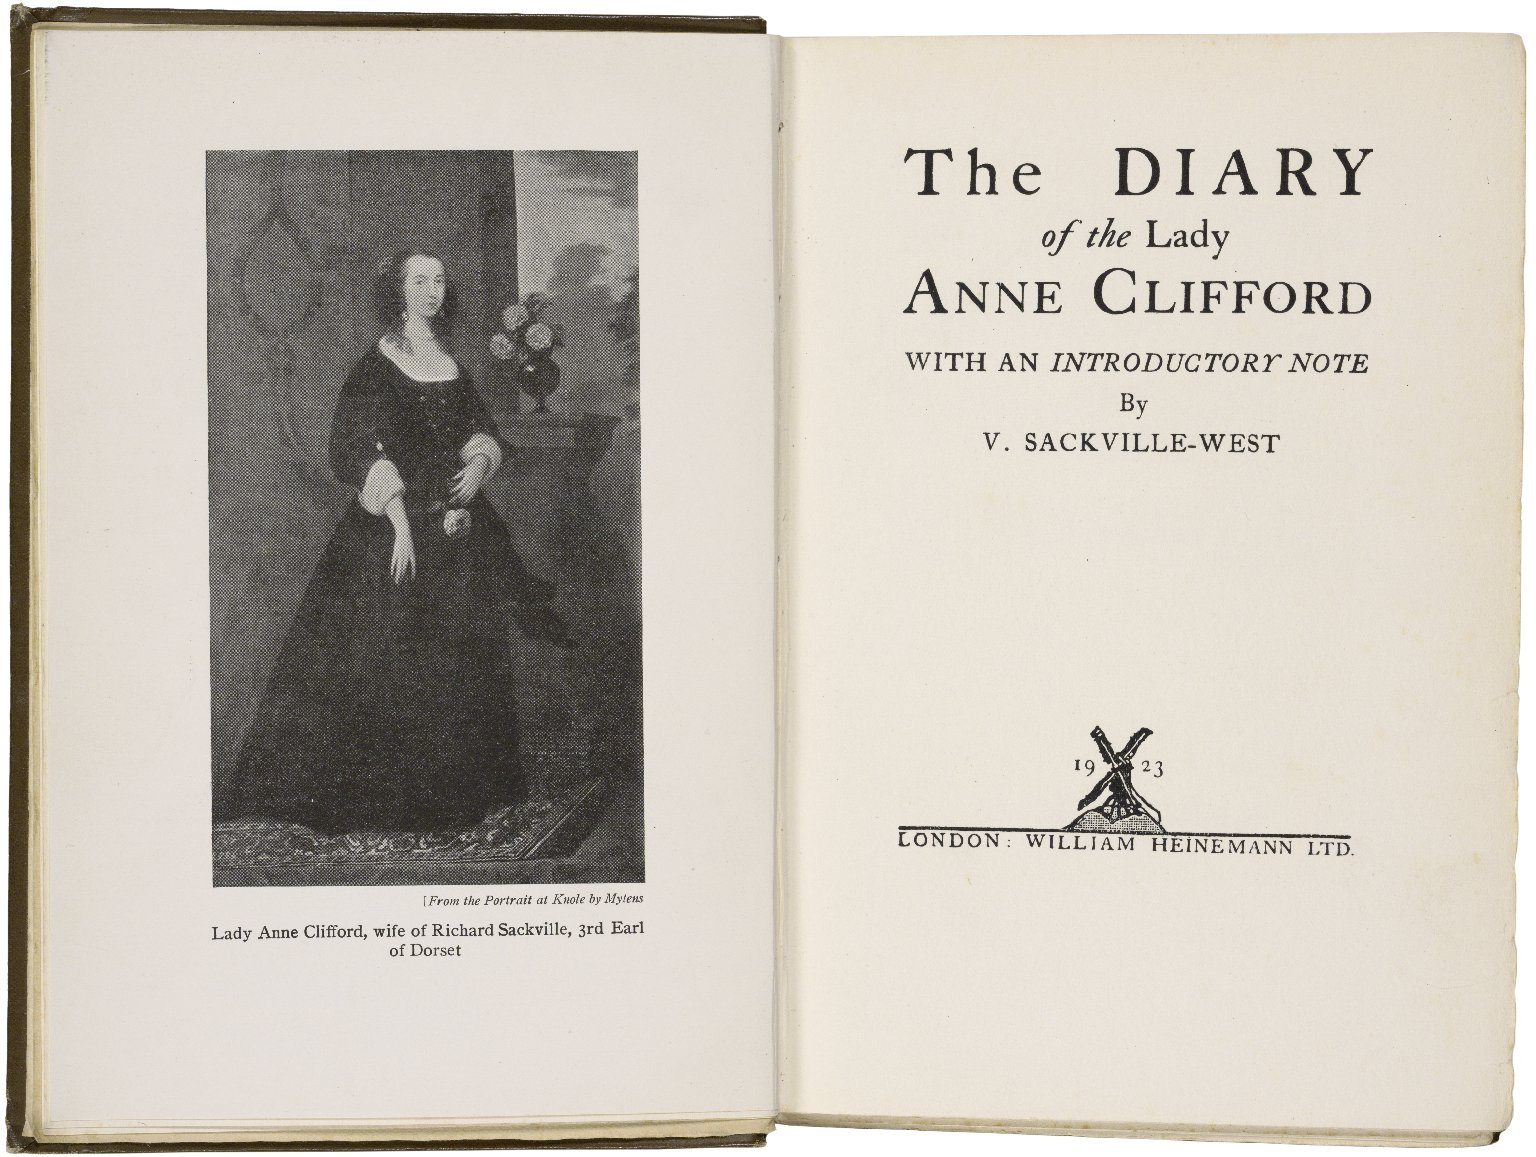 The diary of the Lady Anne Clifford, with an introductory note by V. Sackville-West.